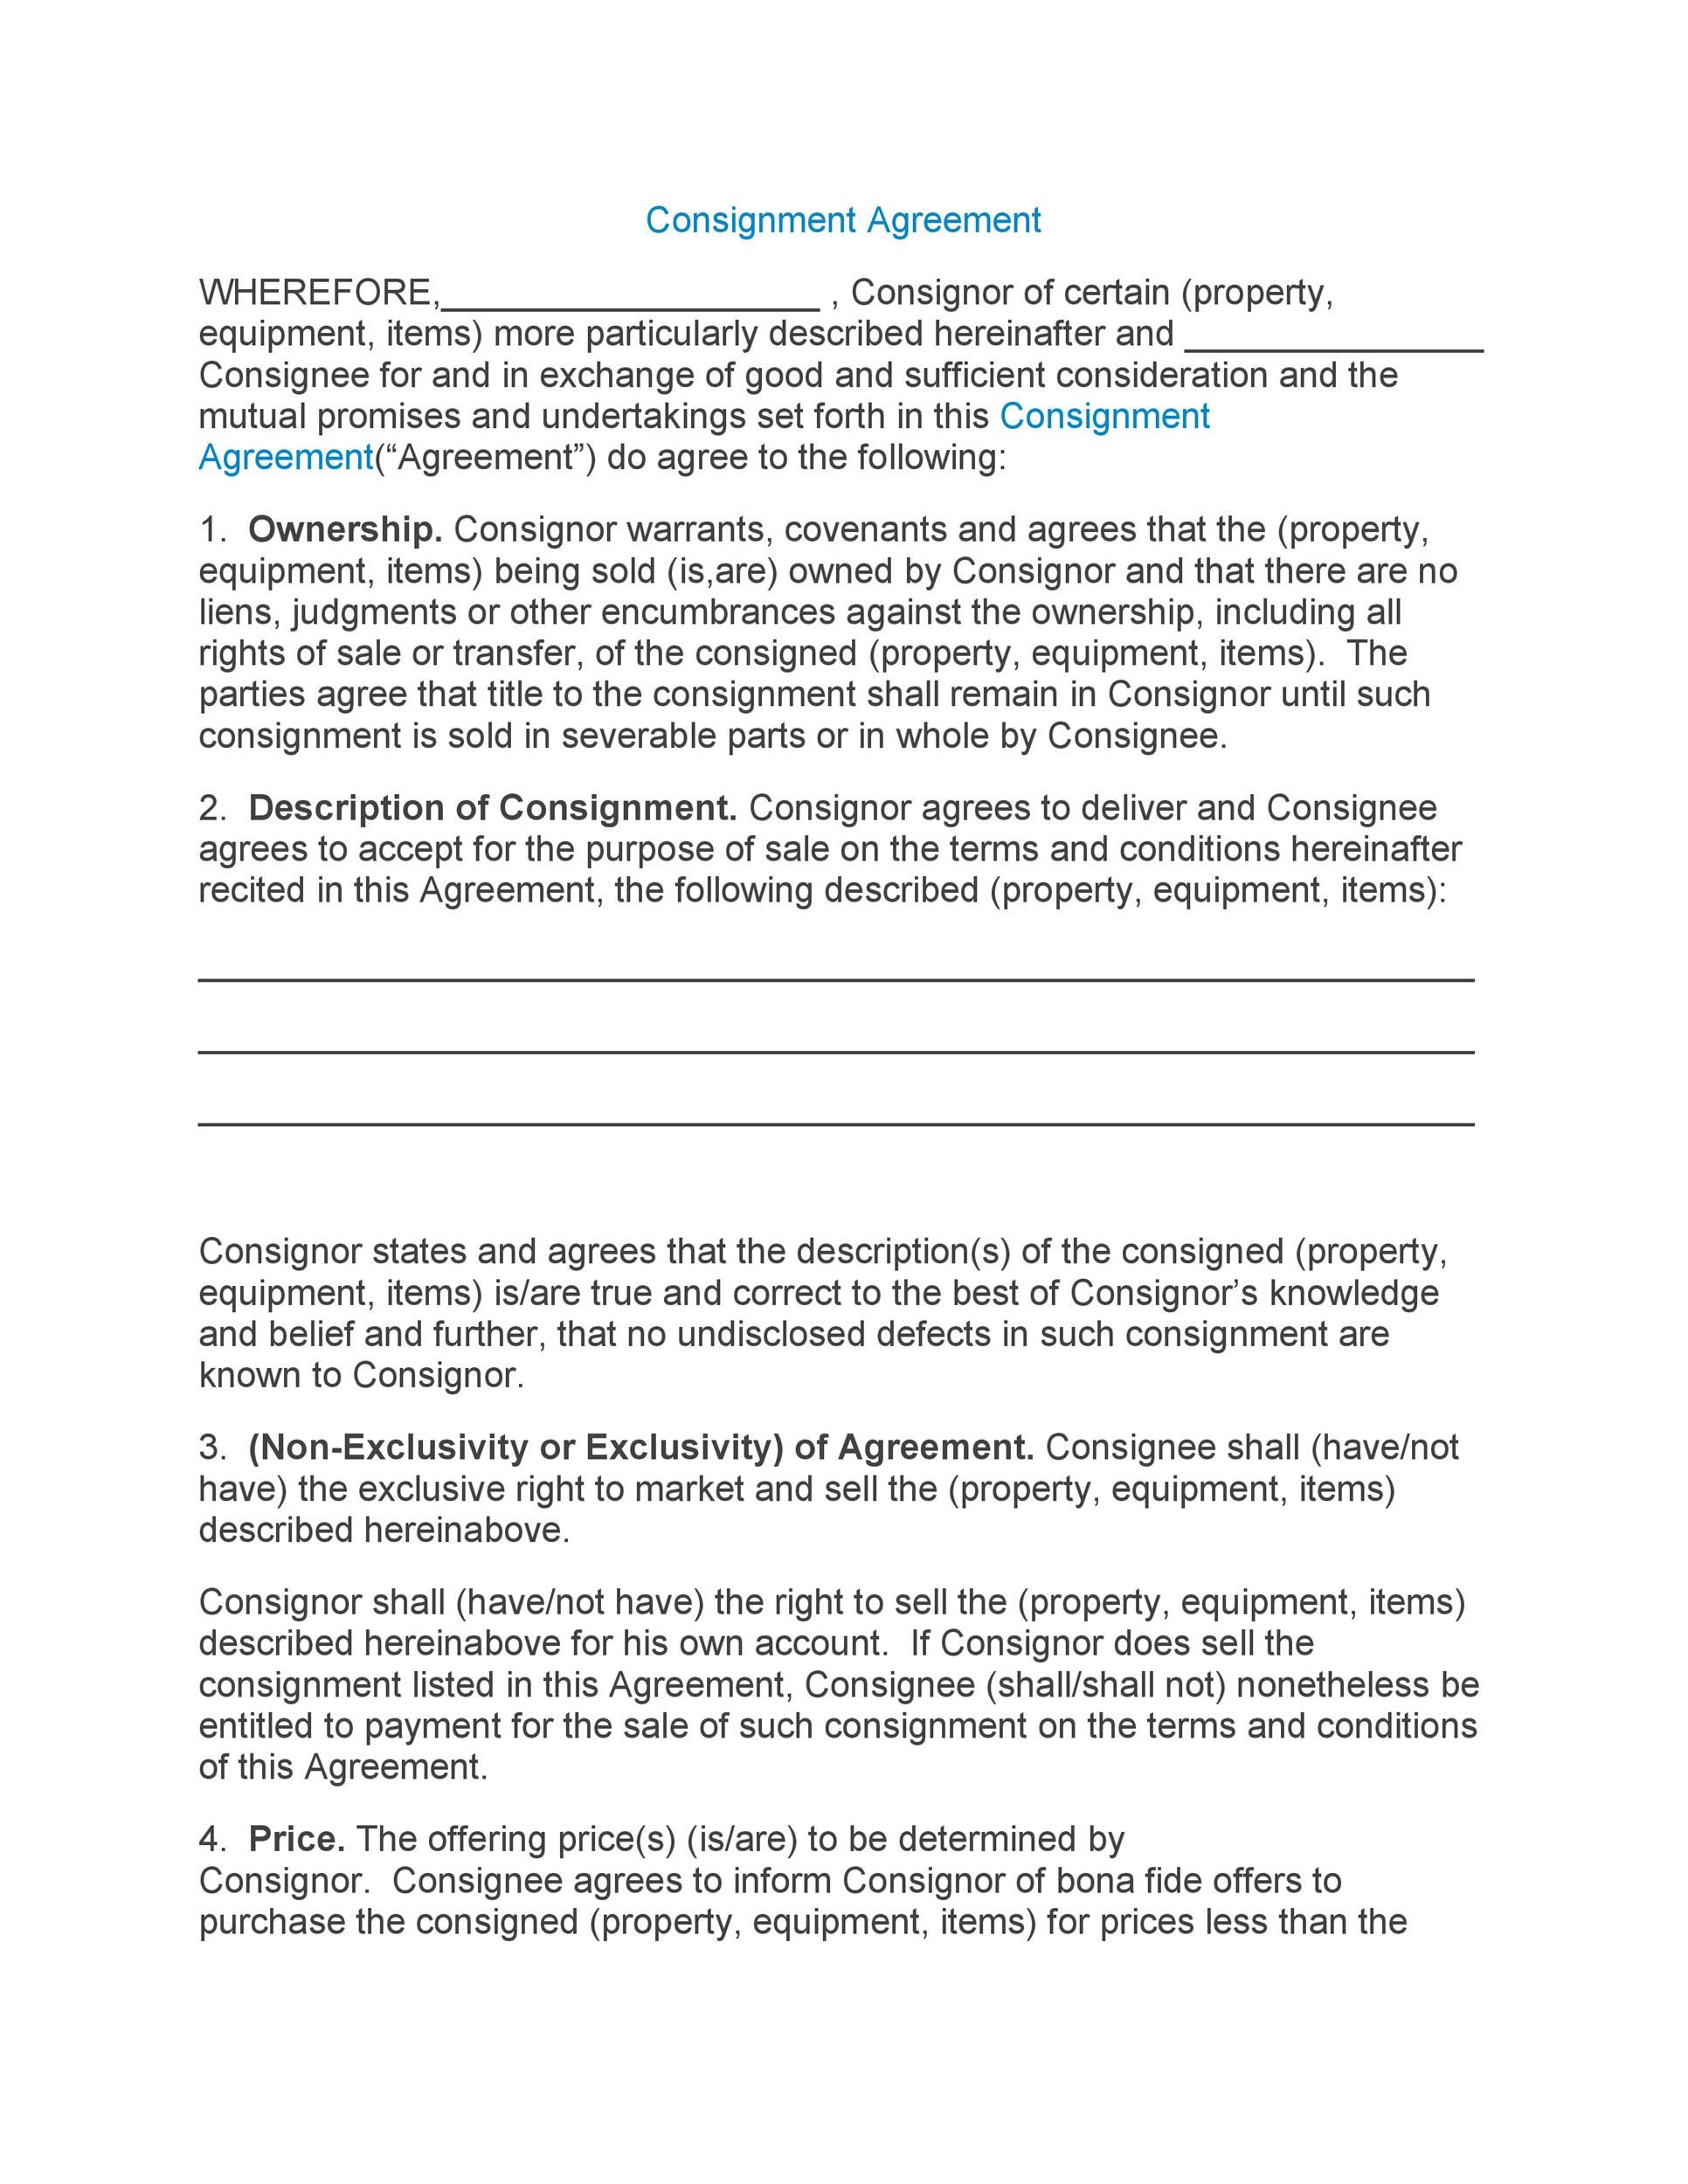 consignment agreement - Teacheng - Consignment Agreement Template